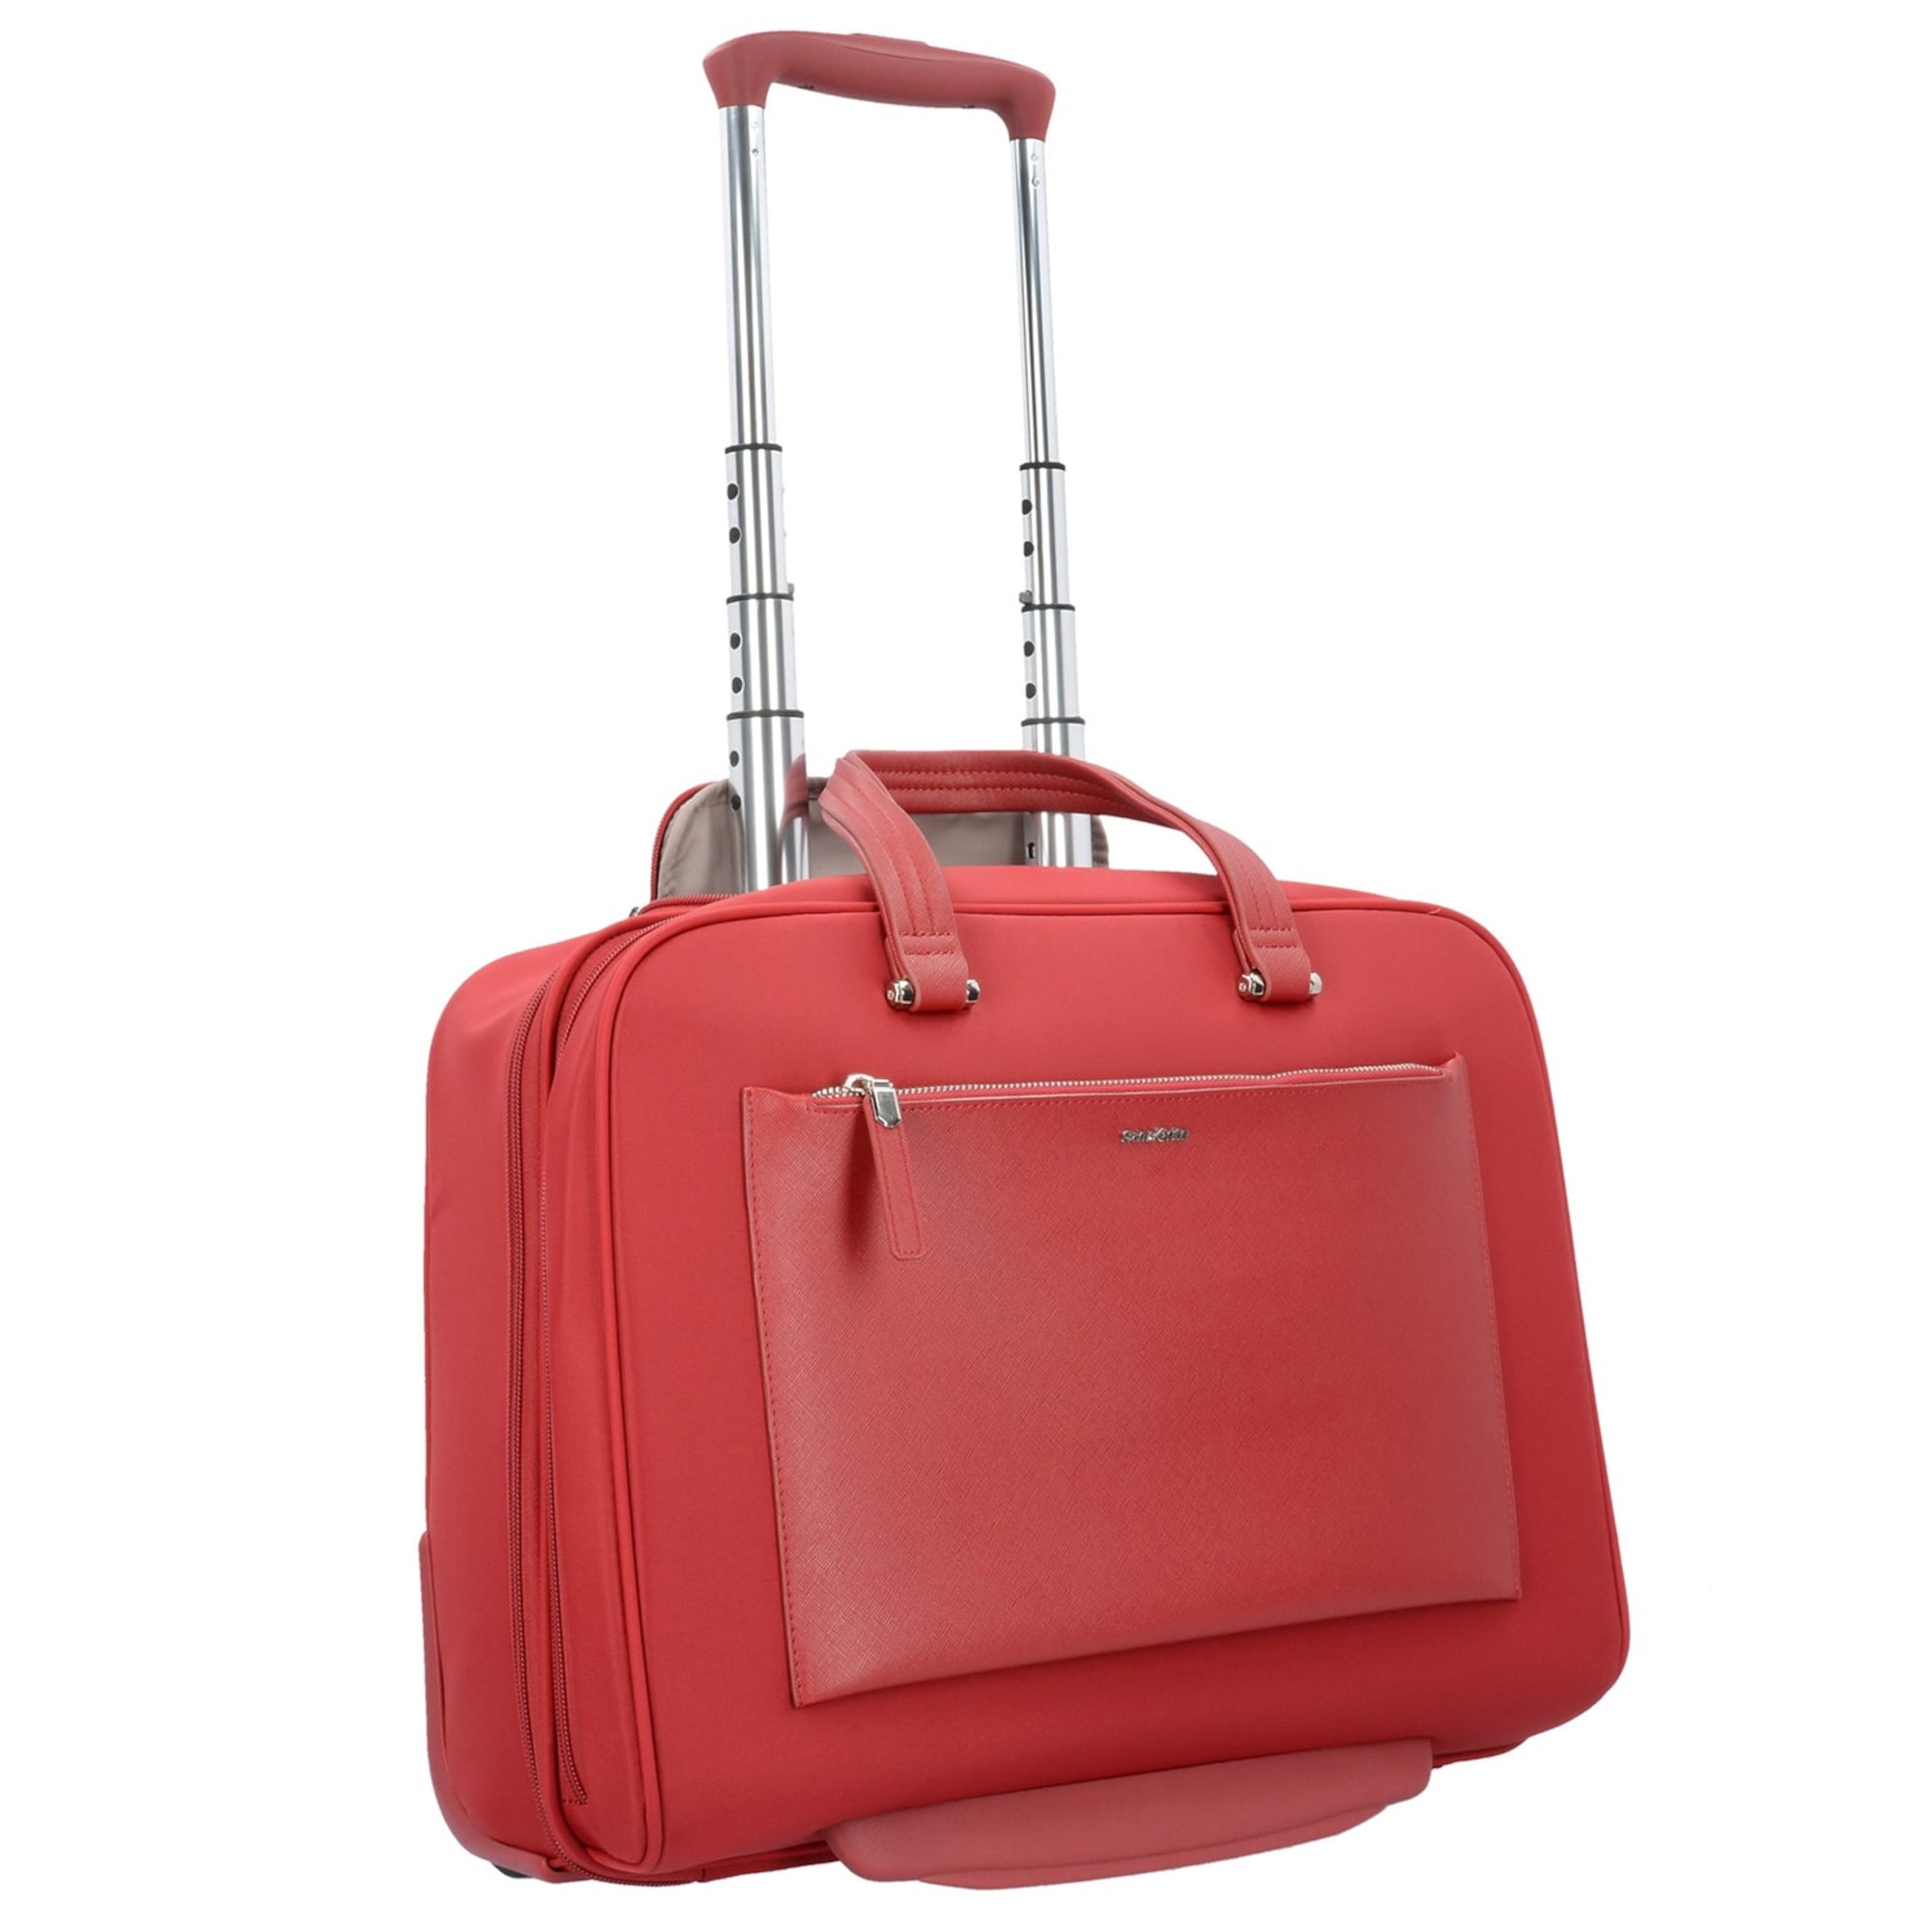 Zalia 2-Rollen Business Trolley 36,5 cm | Taschen > Businesstaschen > Business Trolleys | Koralle | Samsonite